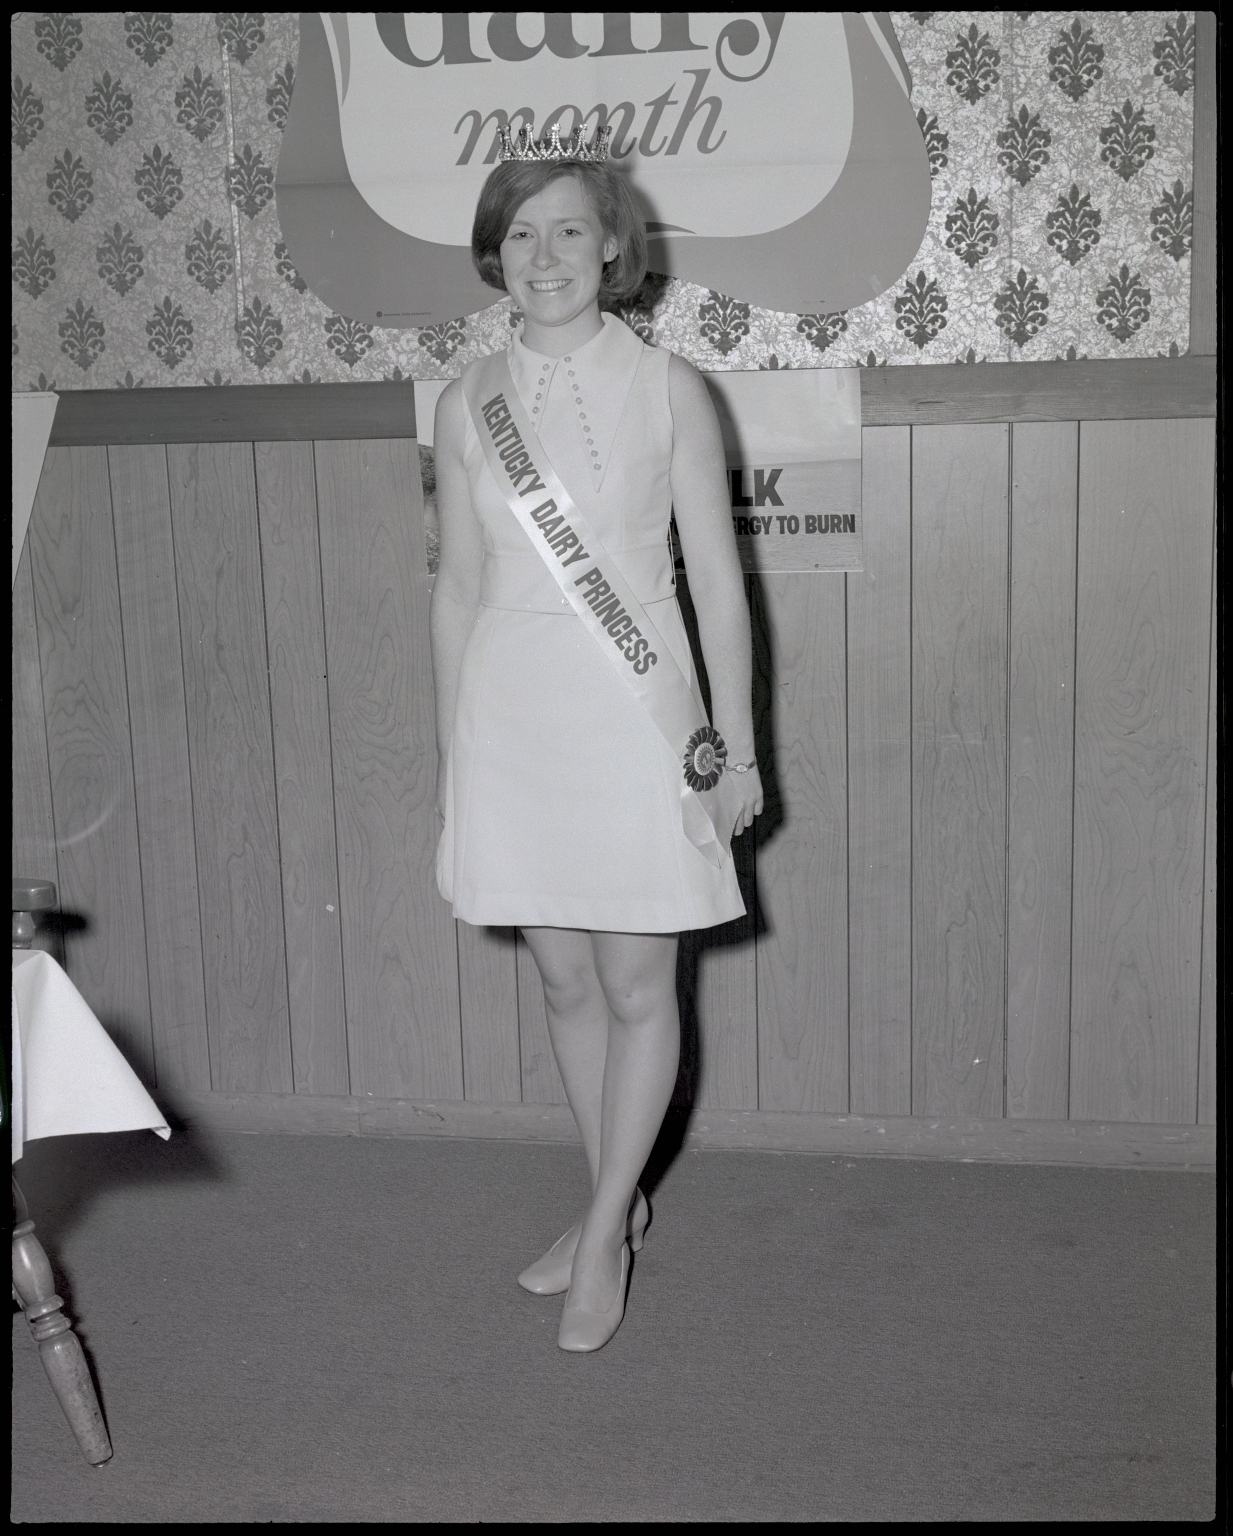 Dairyman Incorporated, Kentucky Dairy Princess